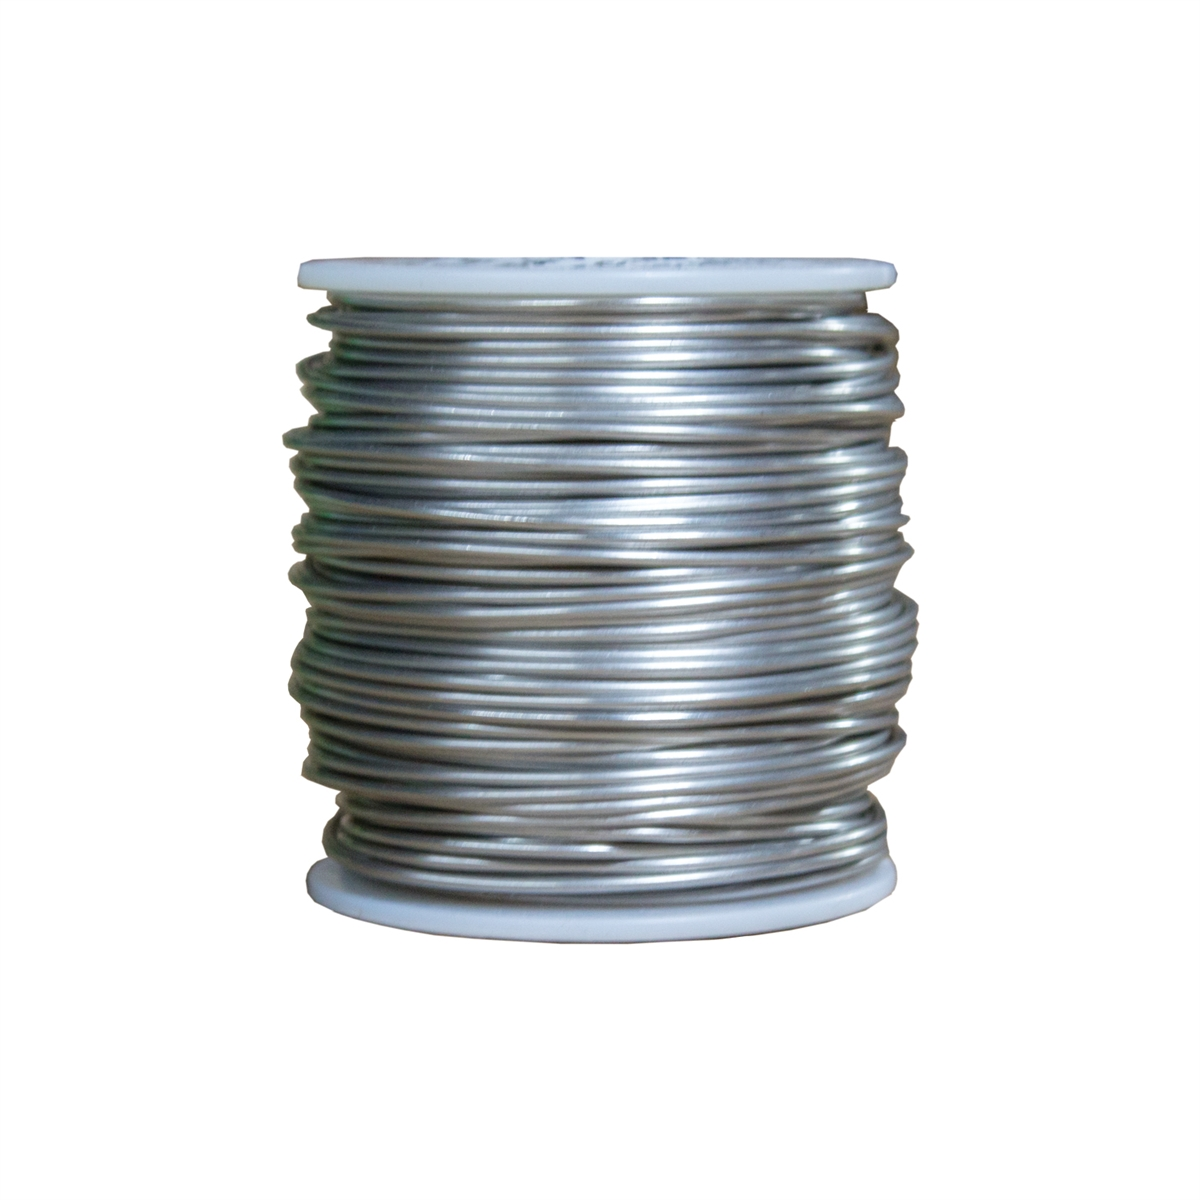 Stainless Steel Safety Wire | Valve and Flange Insulation Accessories